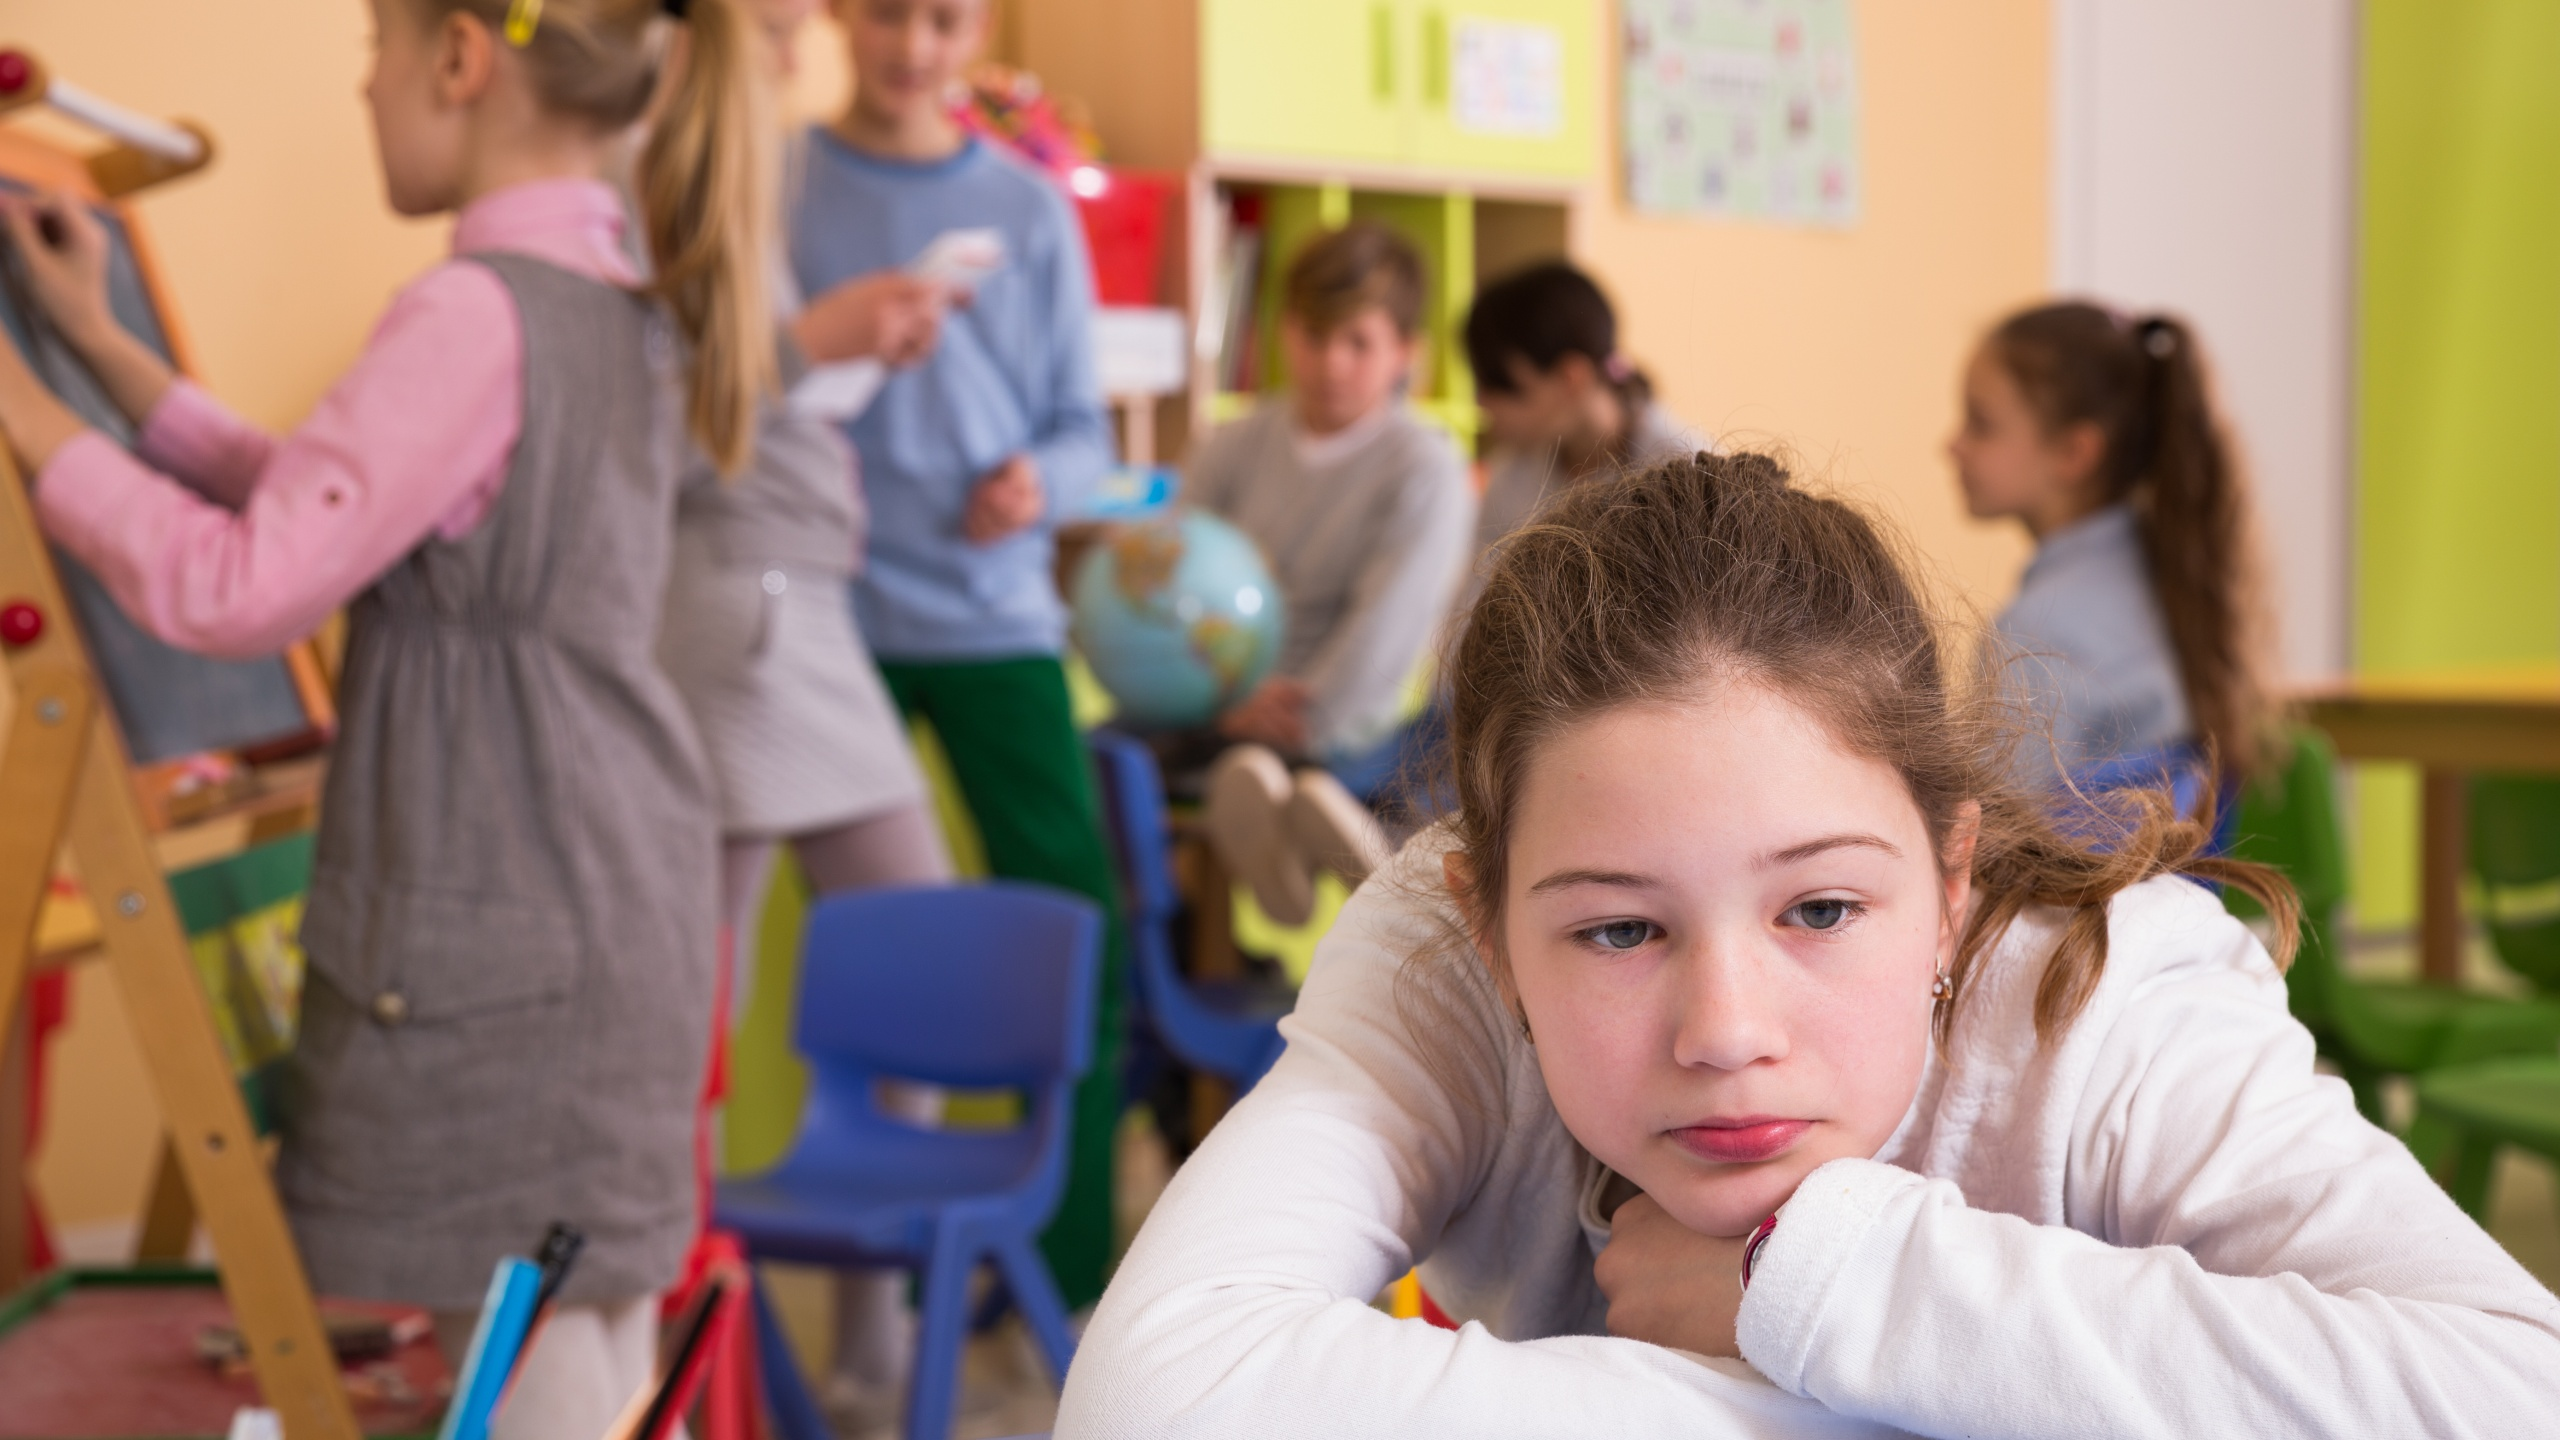 Kids stressed in classroom